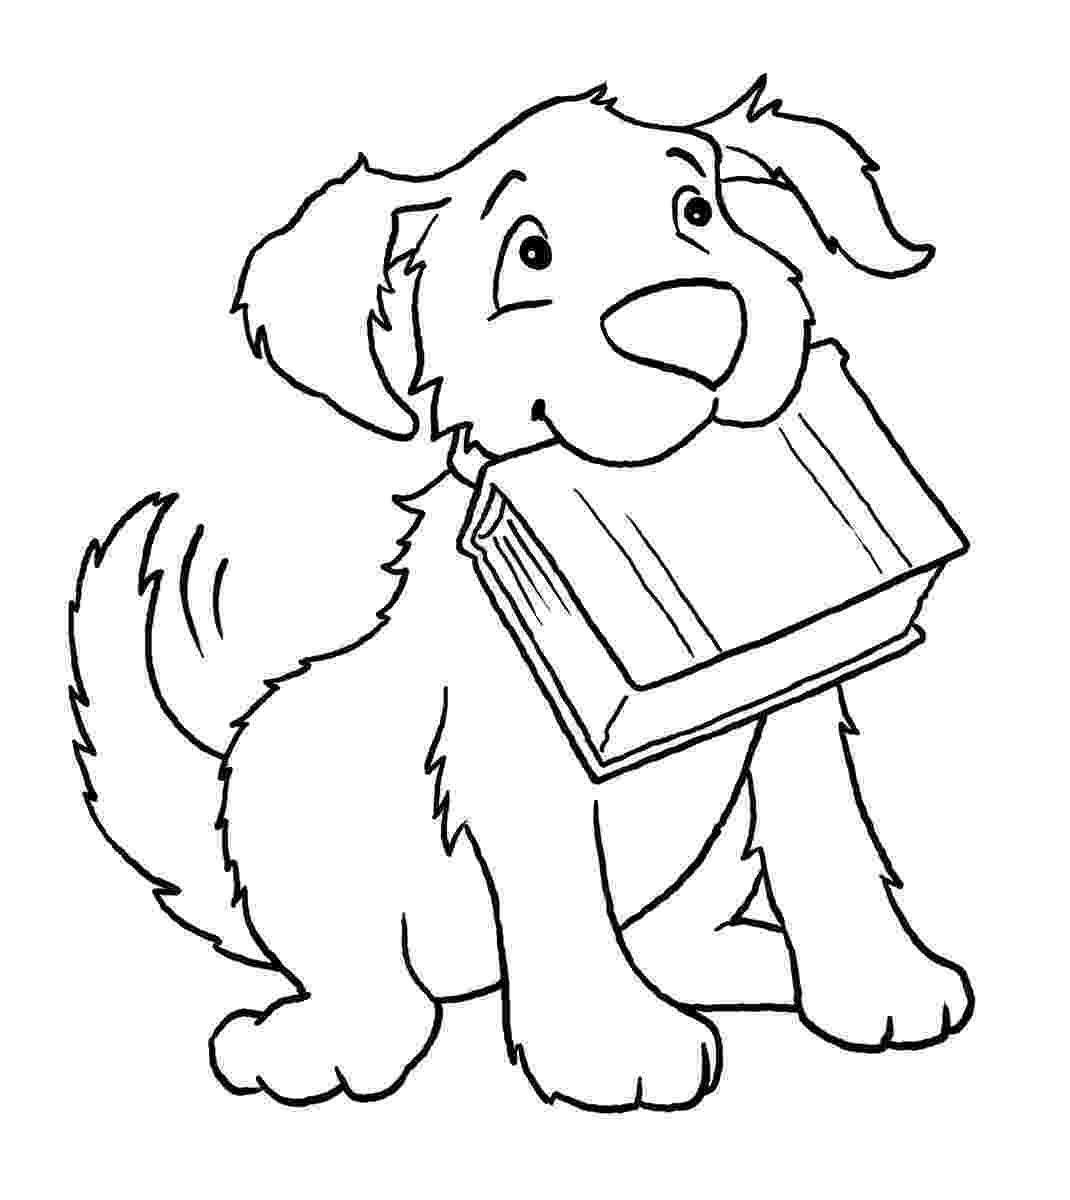 coloring pages easy easy coloring pages best coloring pages for kids easy pages coloring